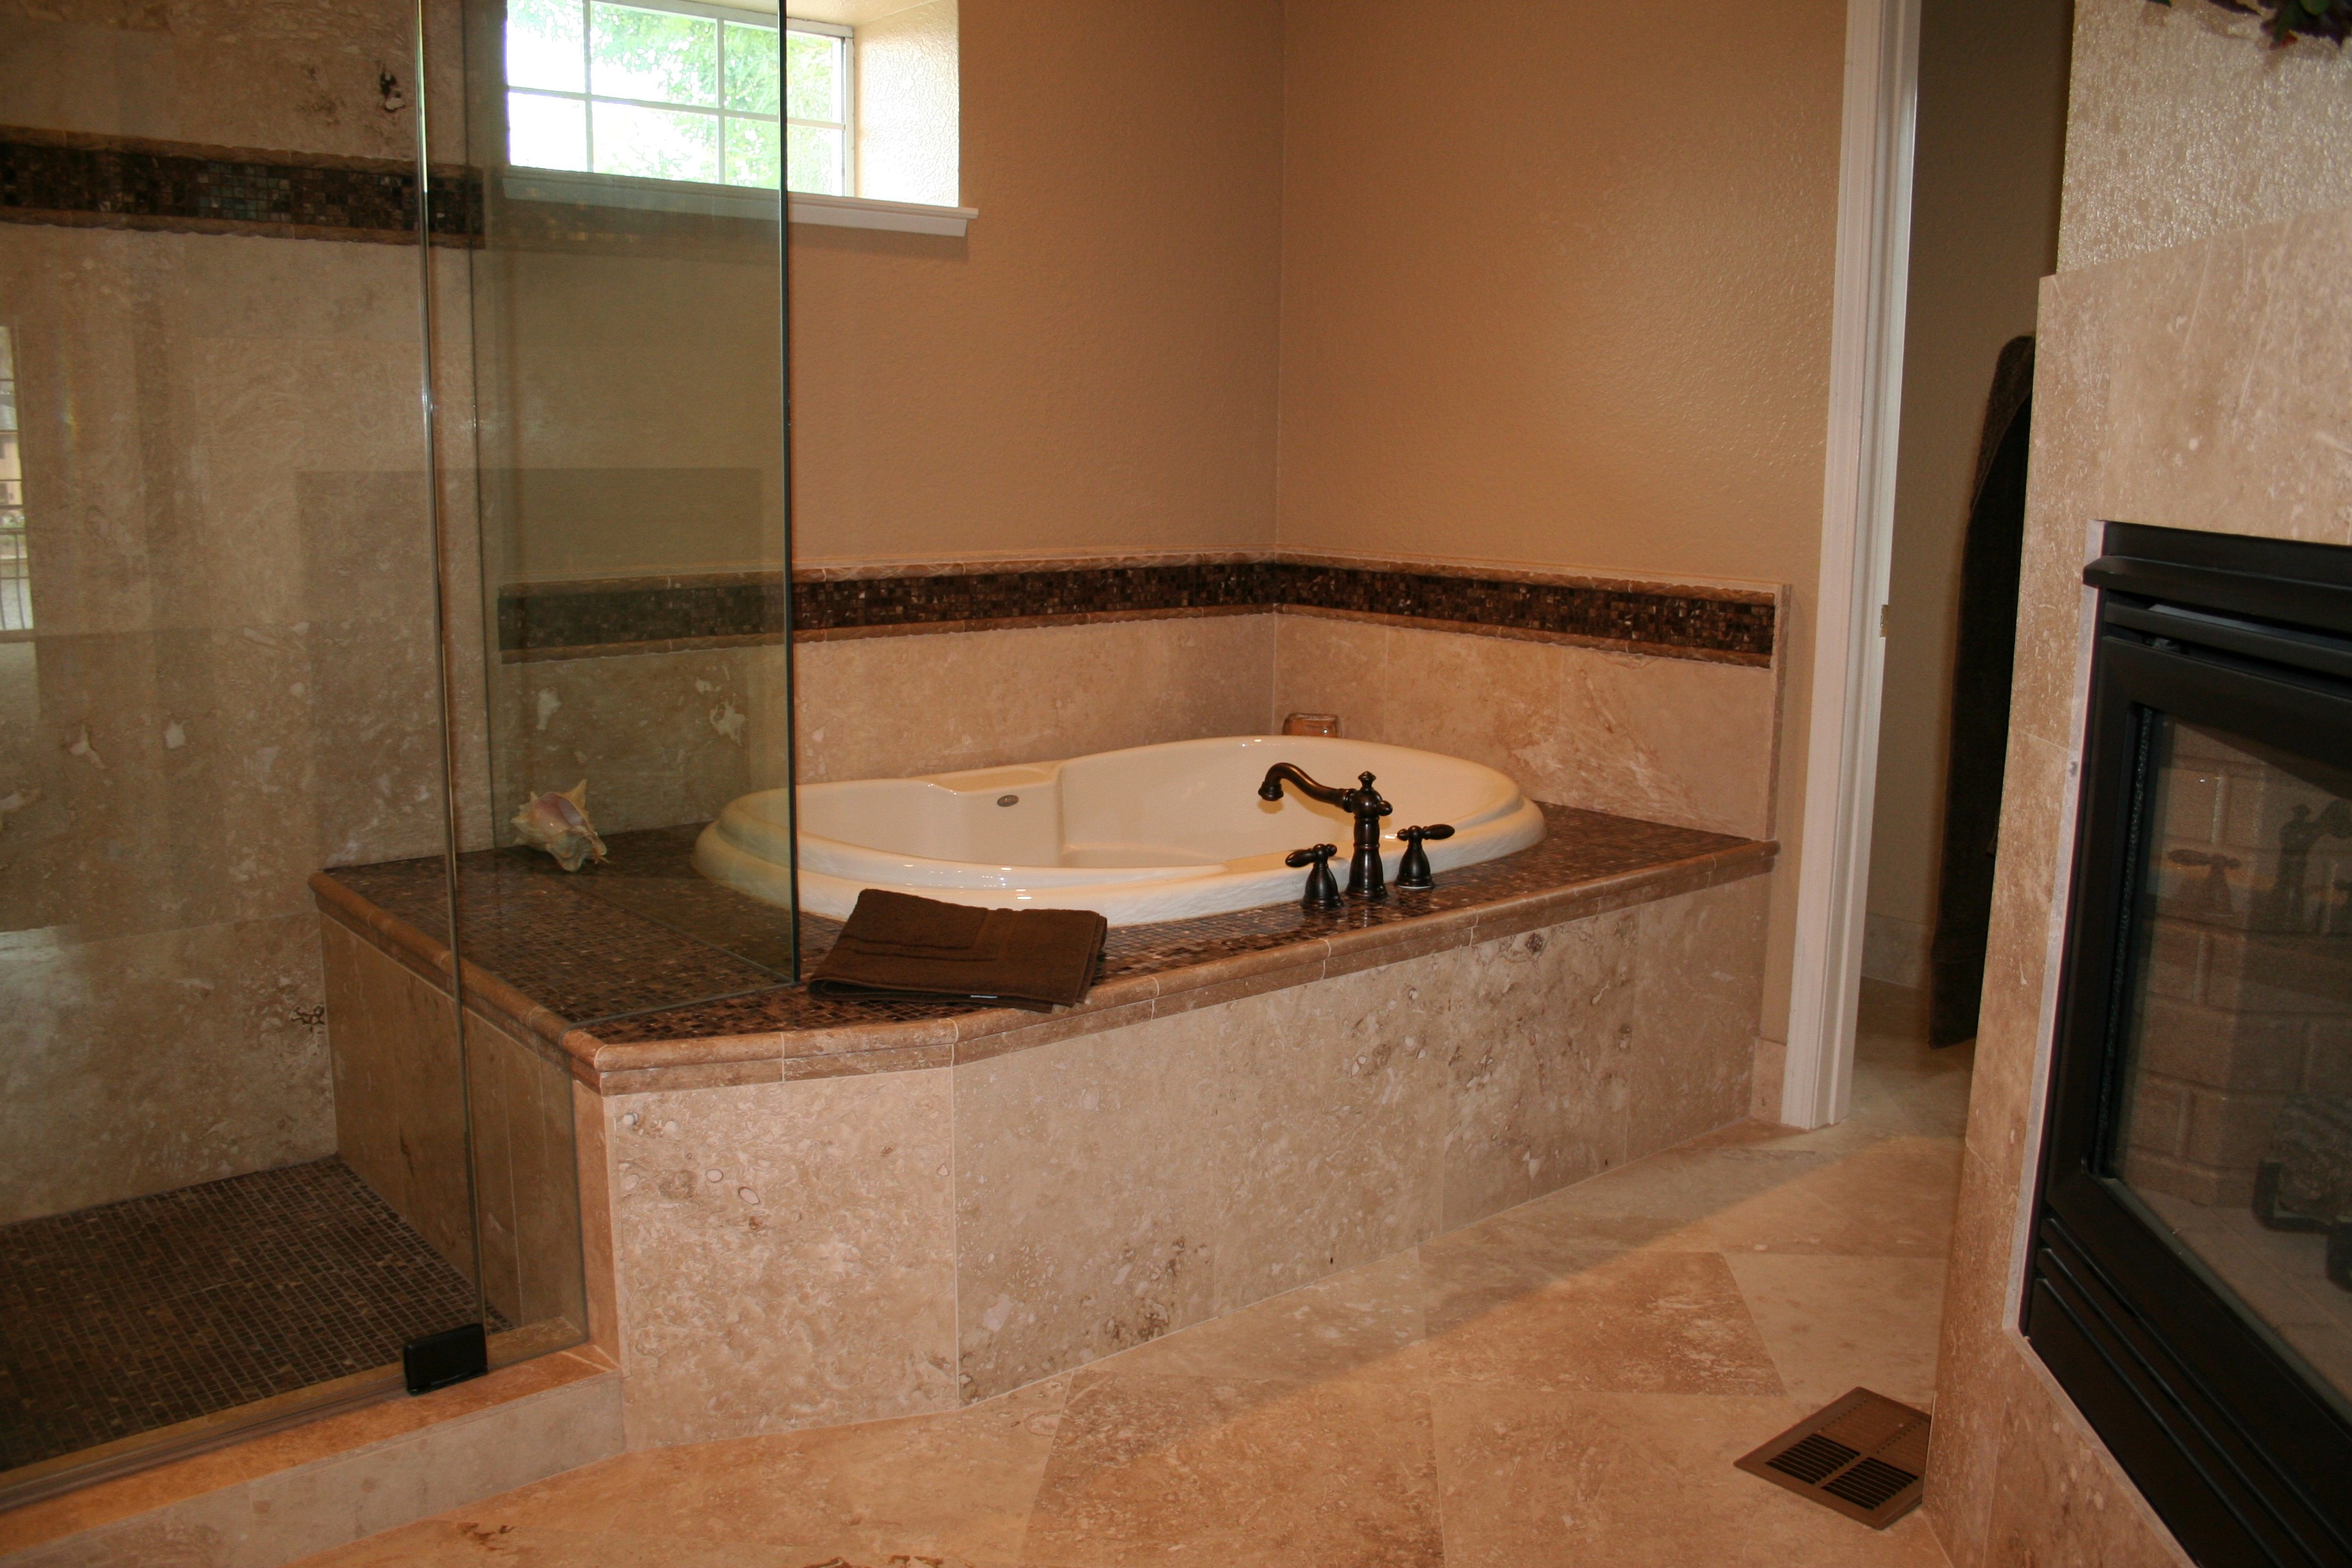 remodel for zhis remodeling bathroom me contractor marvelous